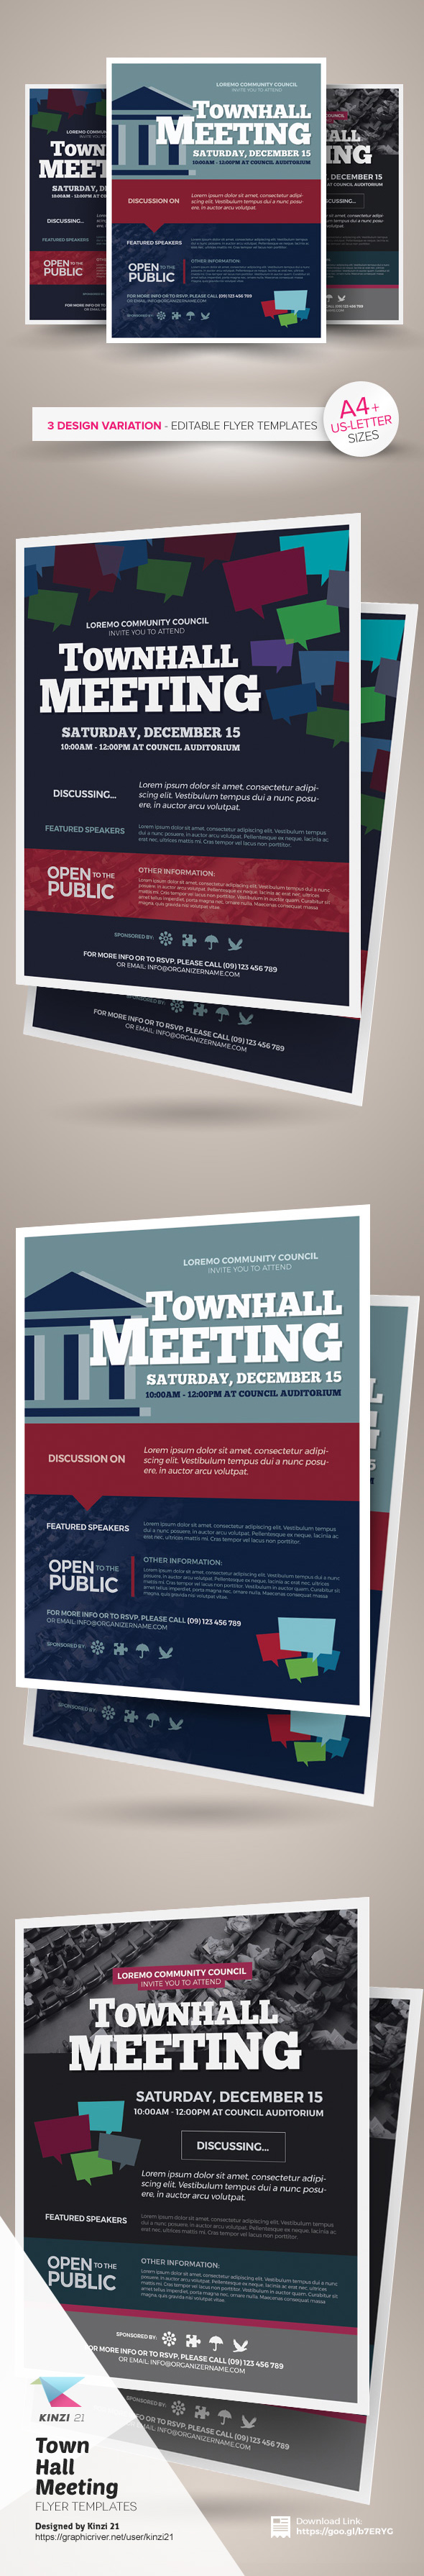 town hall meeting flyer templates on behance town hall meeting flyer templates are fully editable design templates created for on graphic river more info of the templates and how to get the